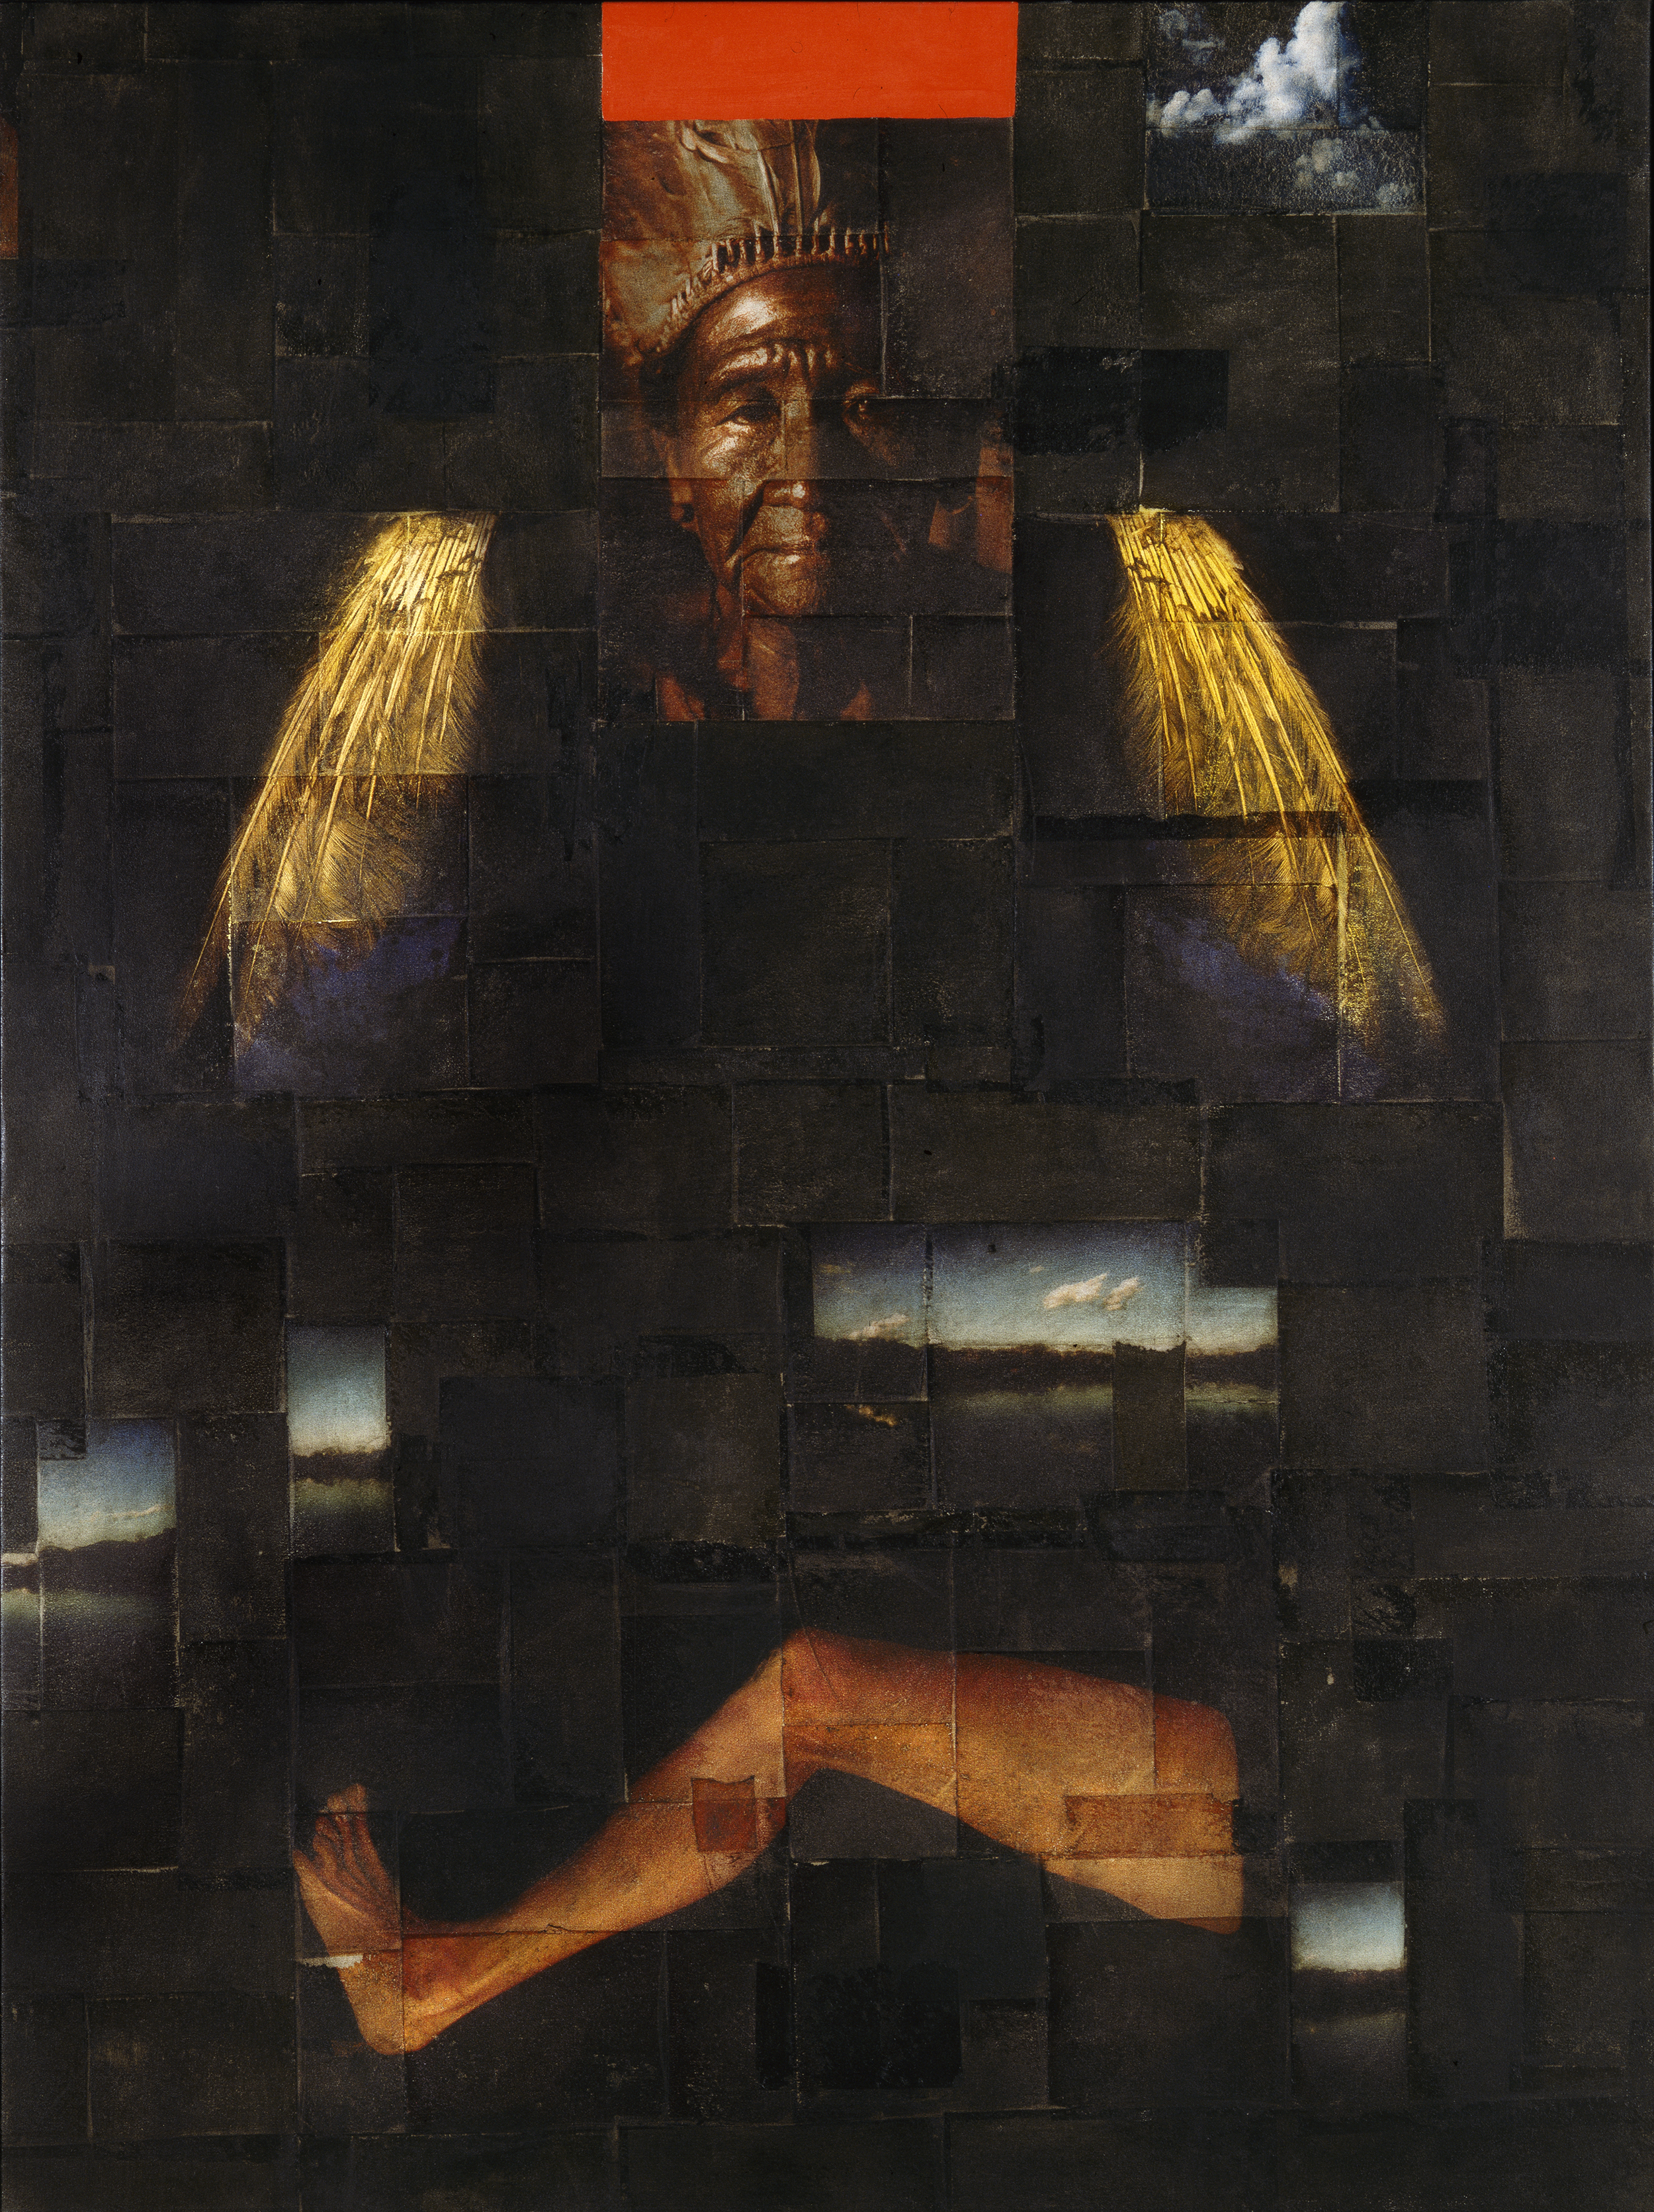 Cloud ( Pingu Chief)   Phototransfer / Oil on Canvas 53 x 203 cm / 60 x 80 in Collection of Assuranceforeningen Gard / Norway 1998